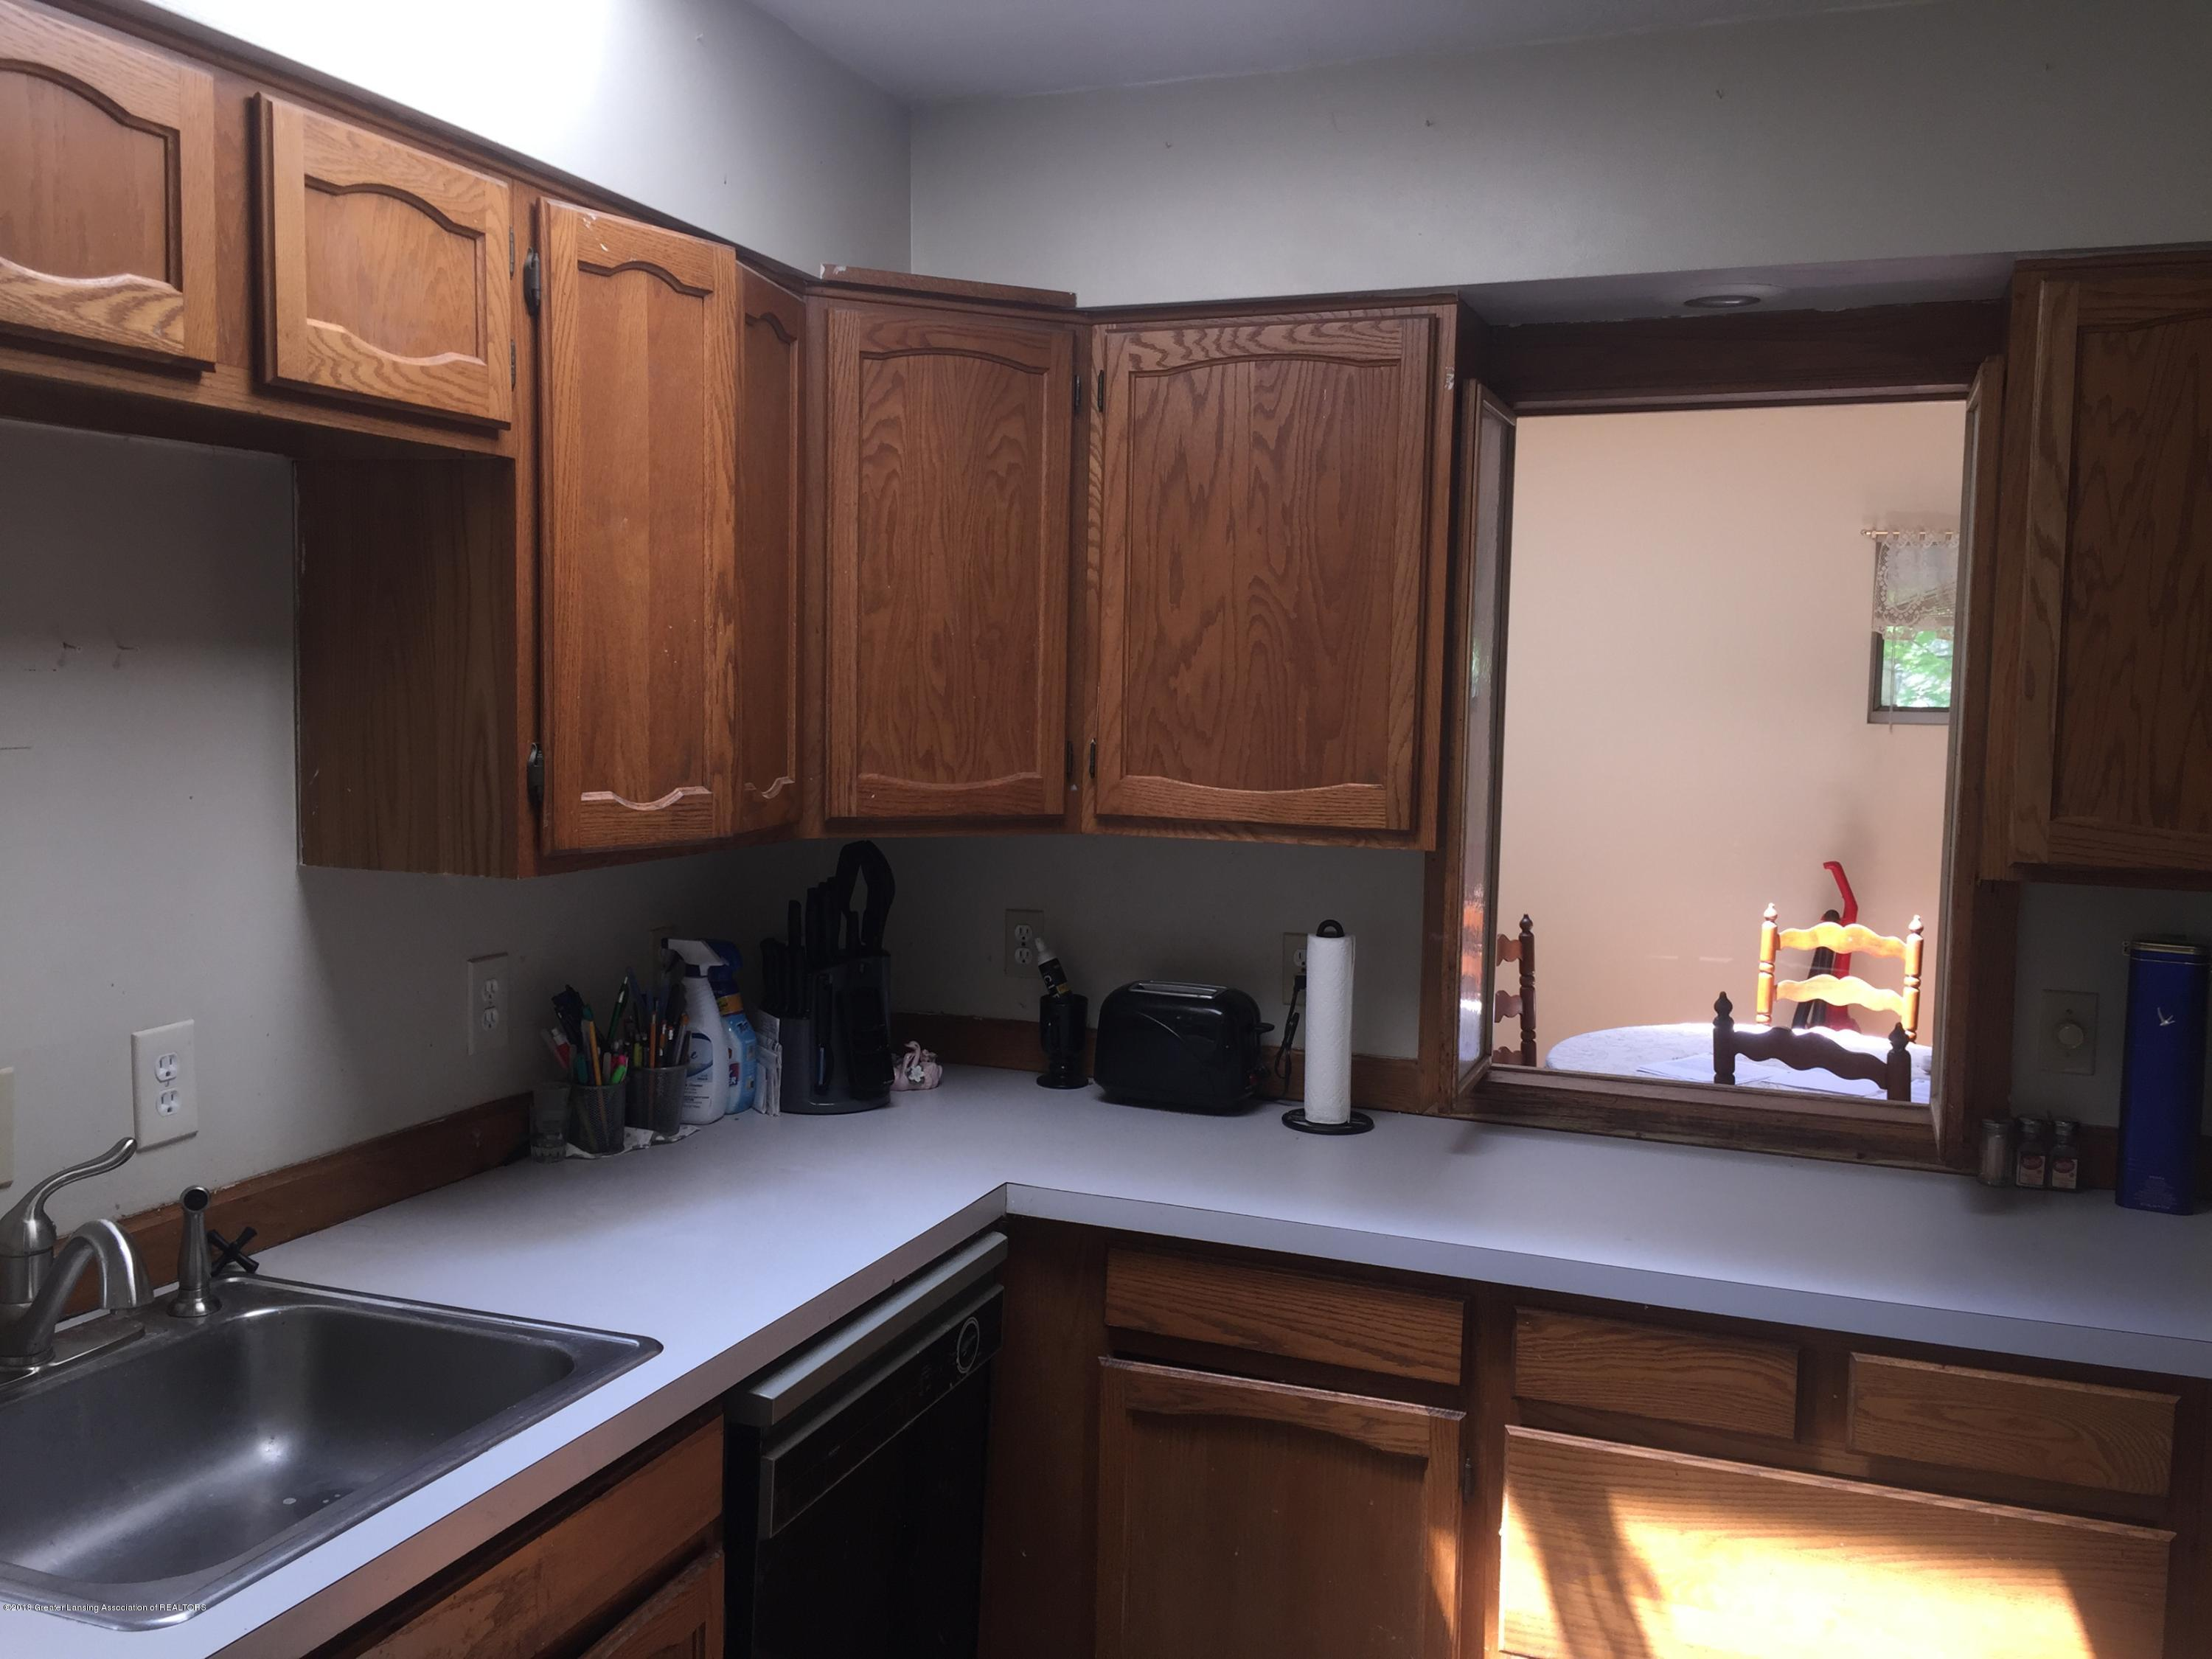 513 S Clemens Ave - Kitchen2 - 11